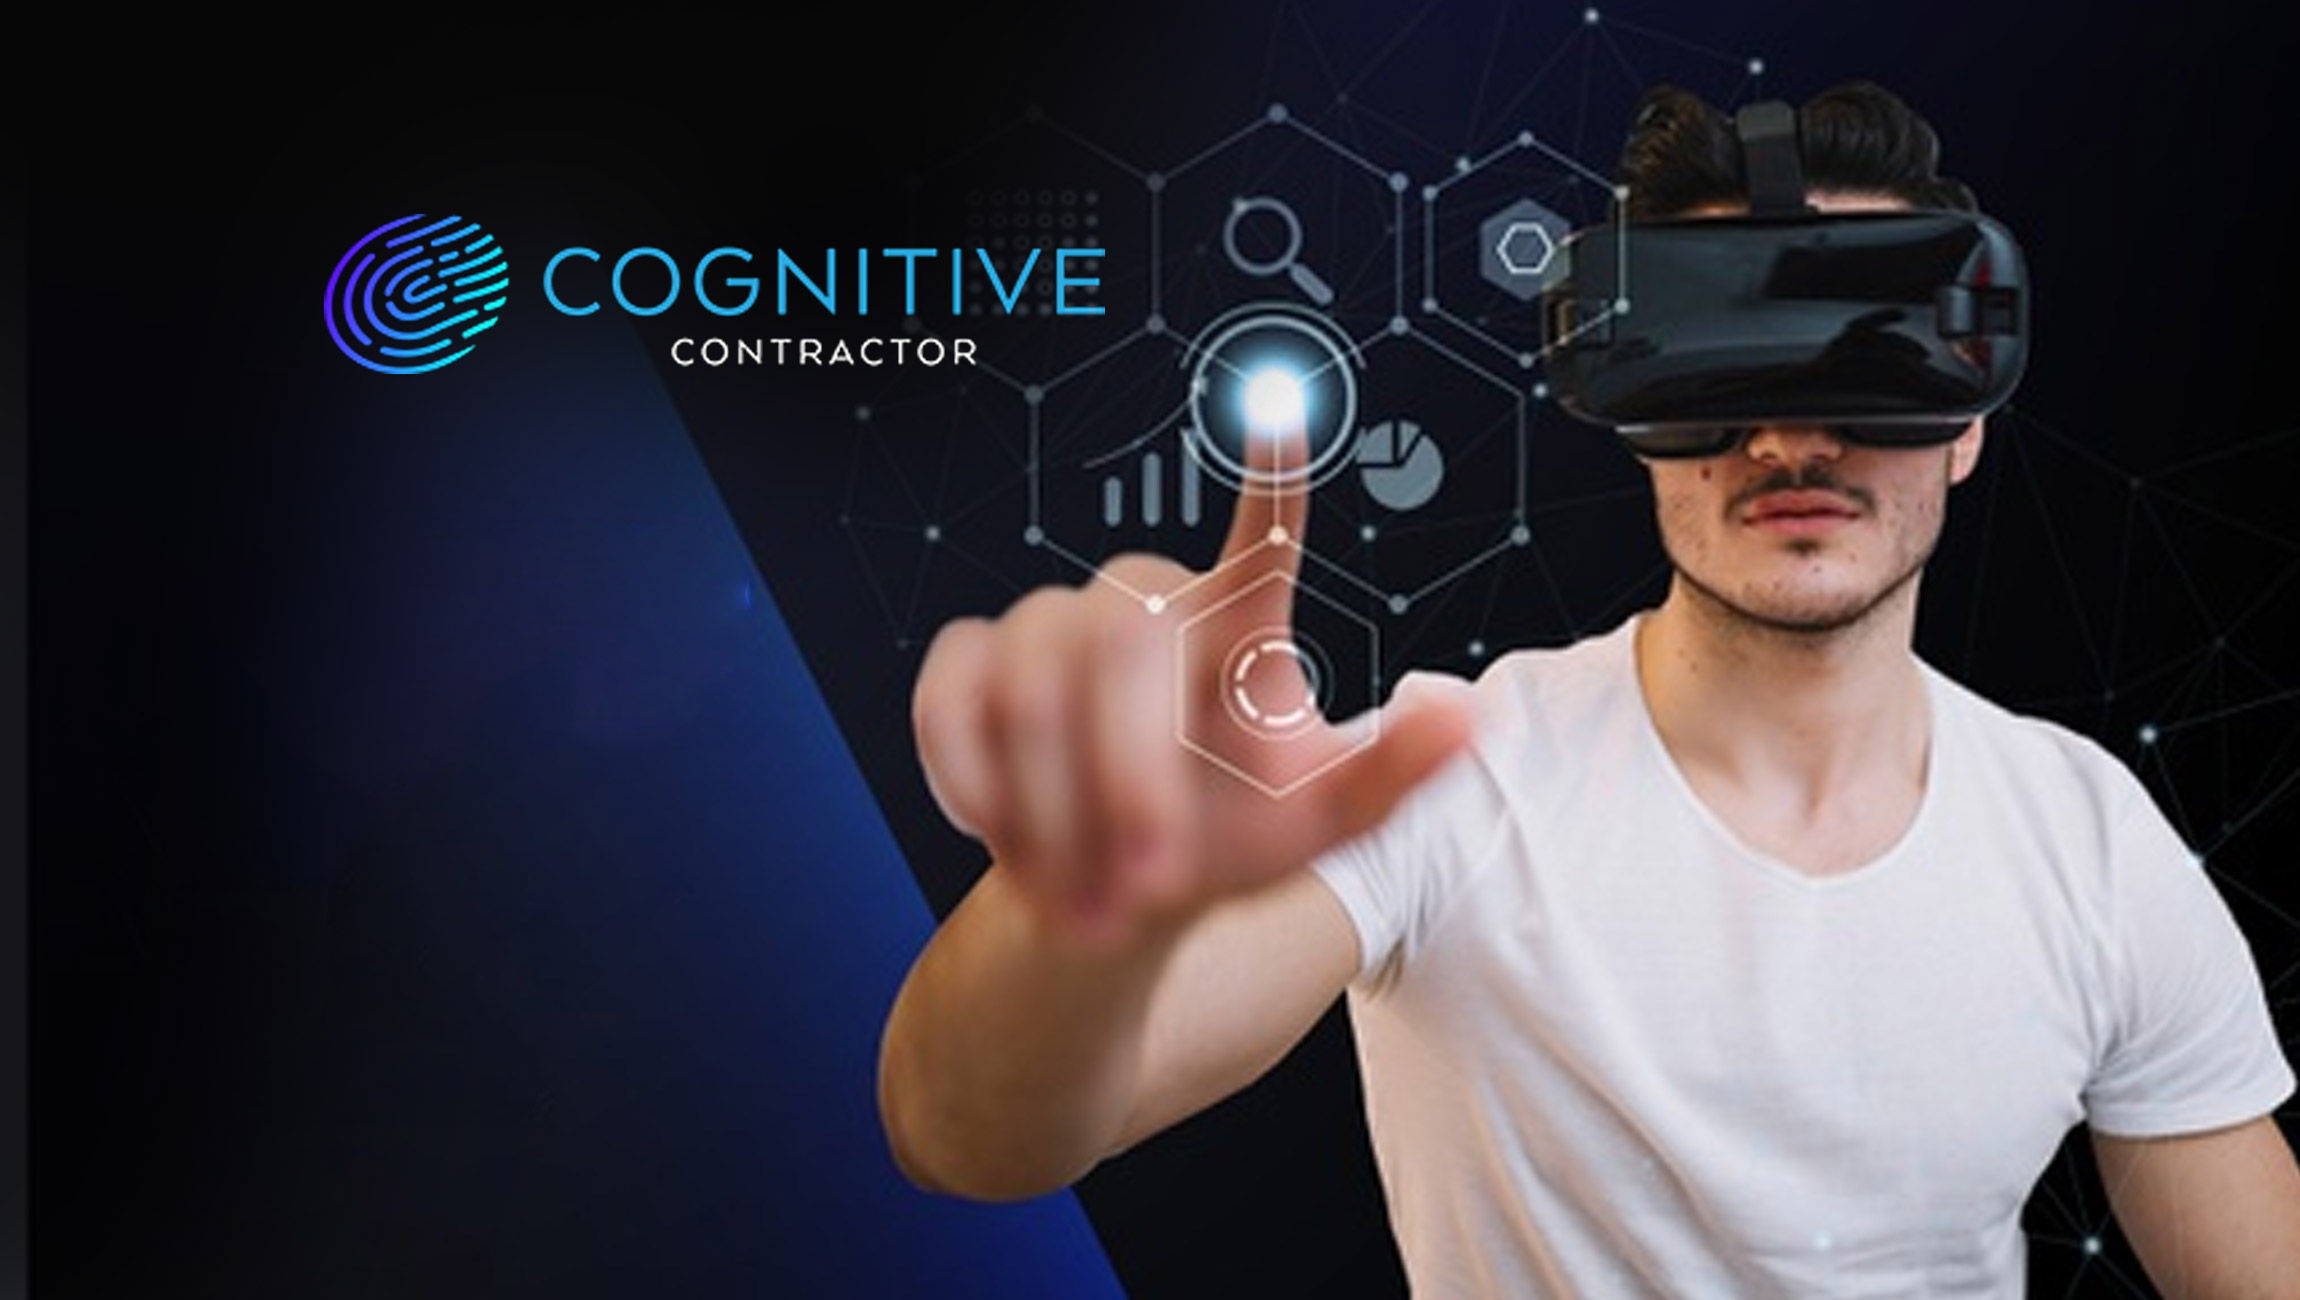 Cognitive Contractor Teaches Contractors How to Leverage Data & Sales Technologies at Virtual IRE 2021